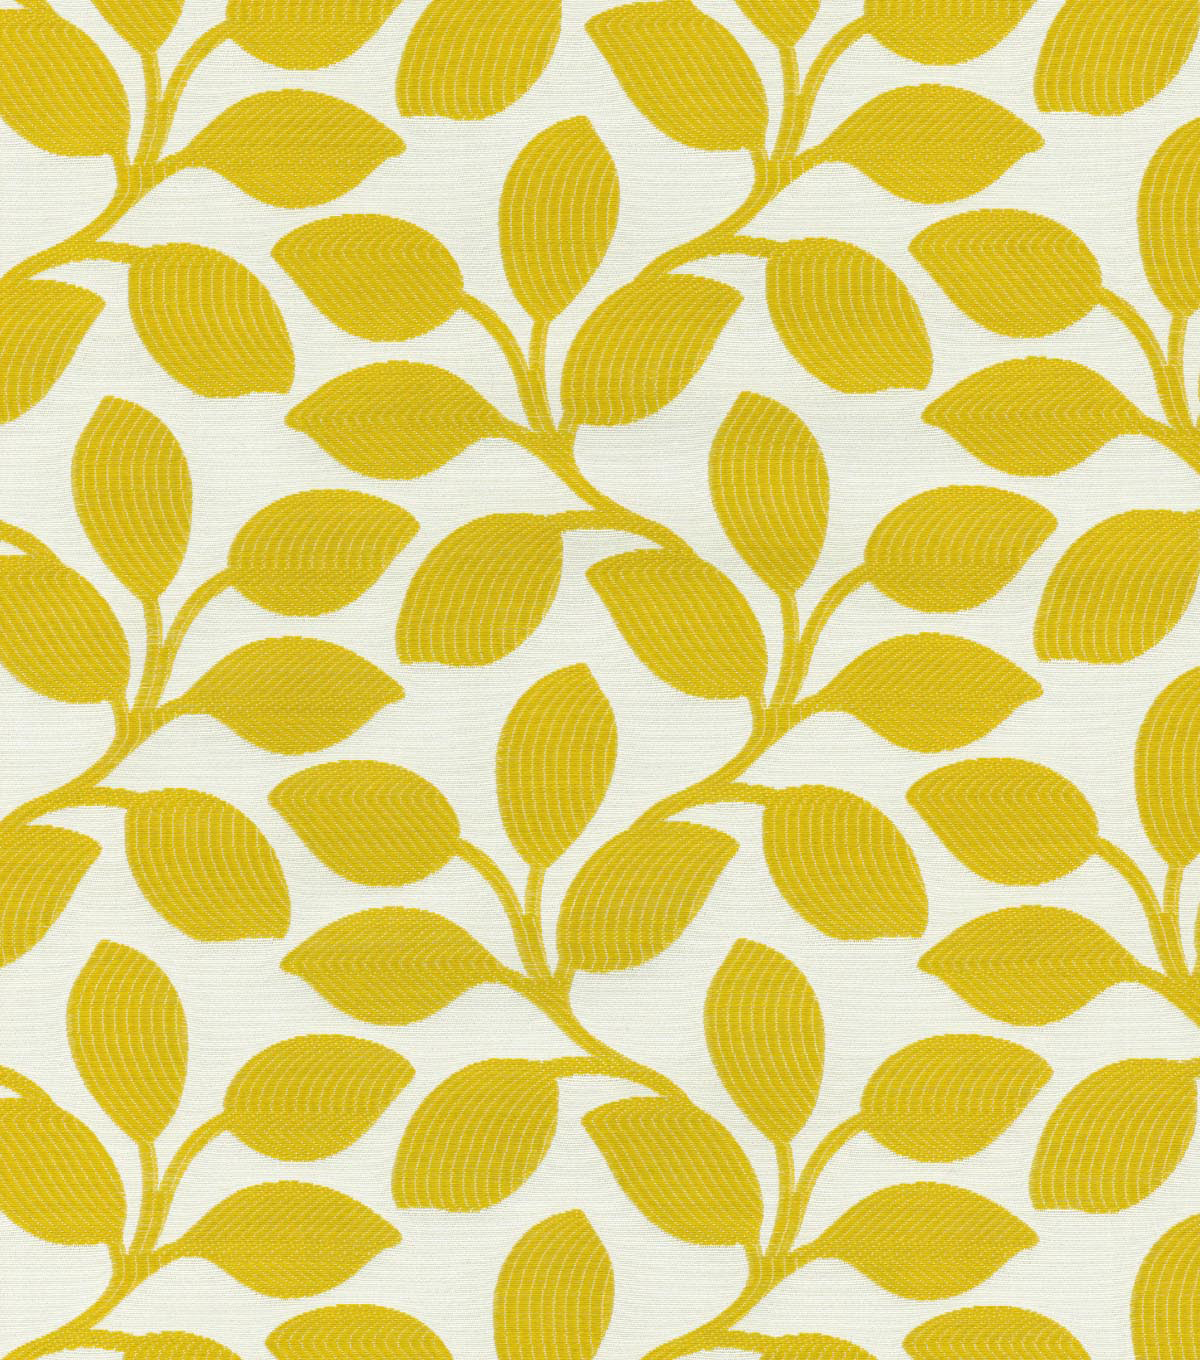 Home Decor 8\u0022x8\u0022 Swatch Fabric-IMAN Home Foliage Filigree Gilded